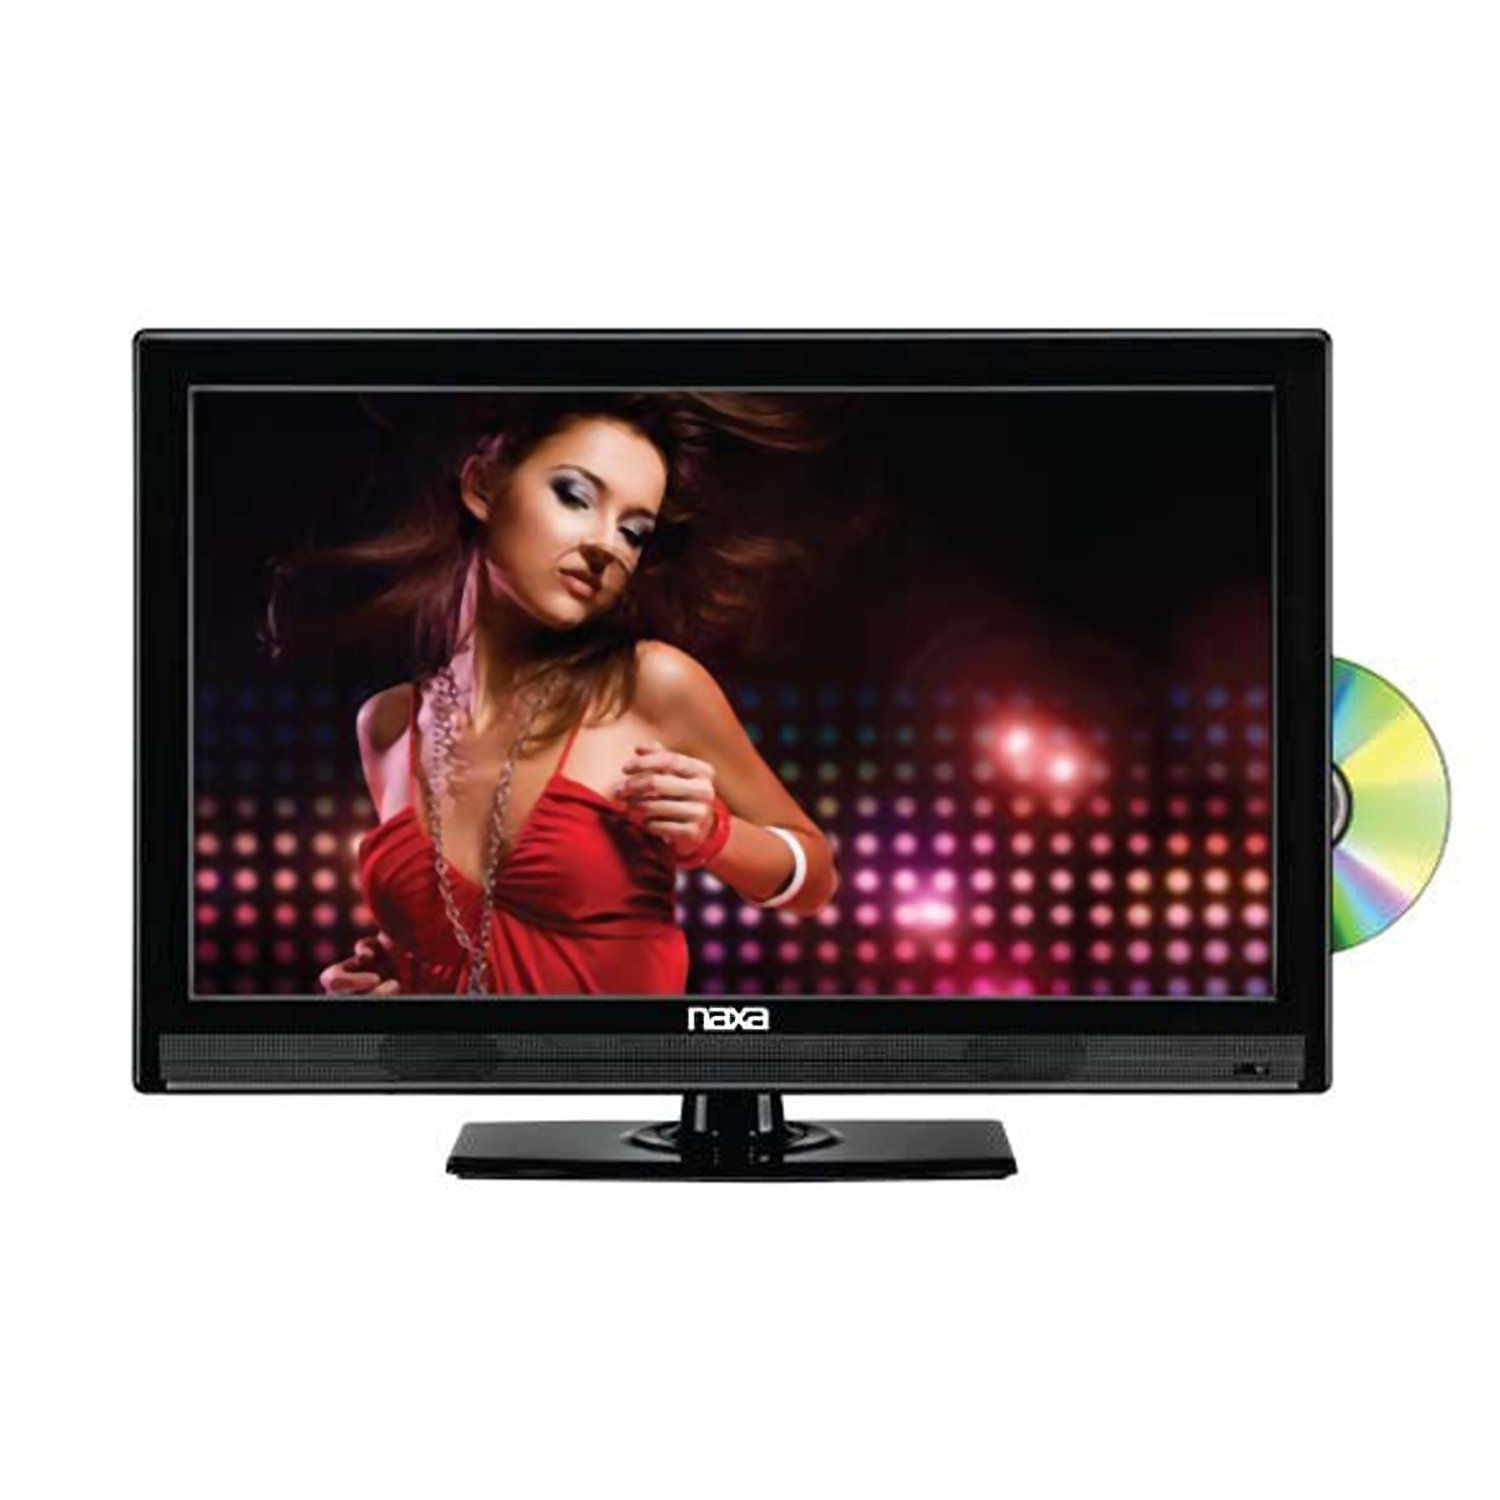 "Exclusive Naxa NTD-2252 22"" Widescreen Full 1080P HD LED Television with Buil..."